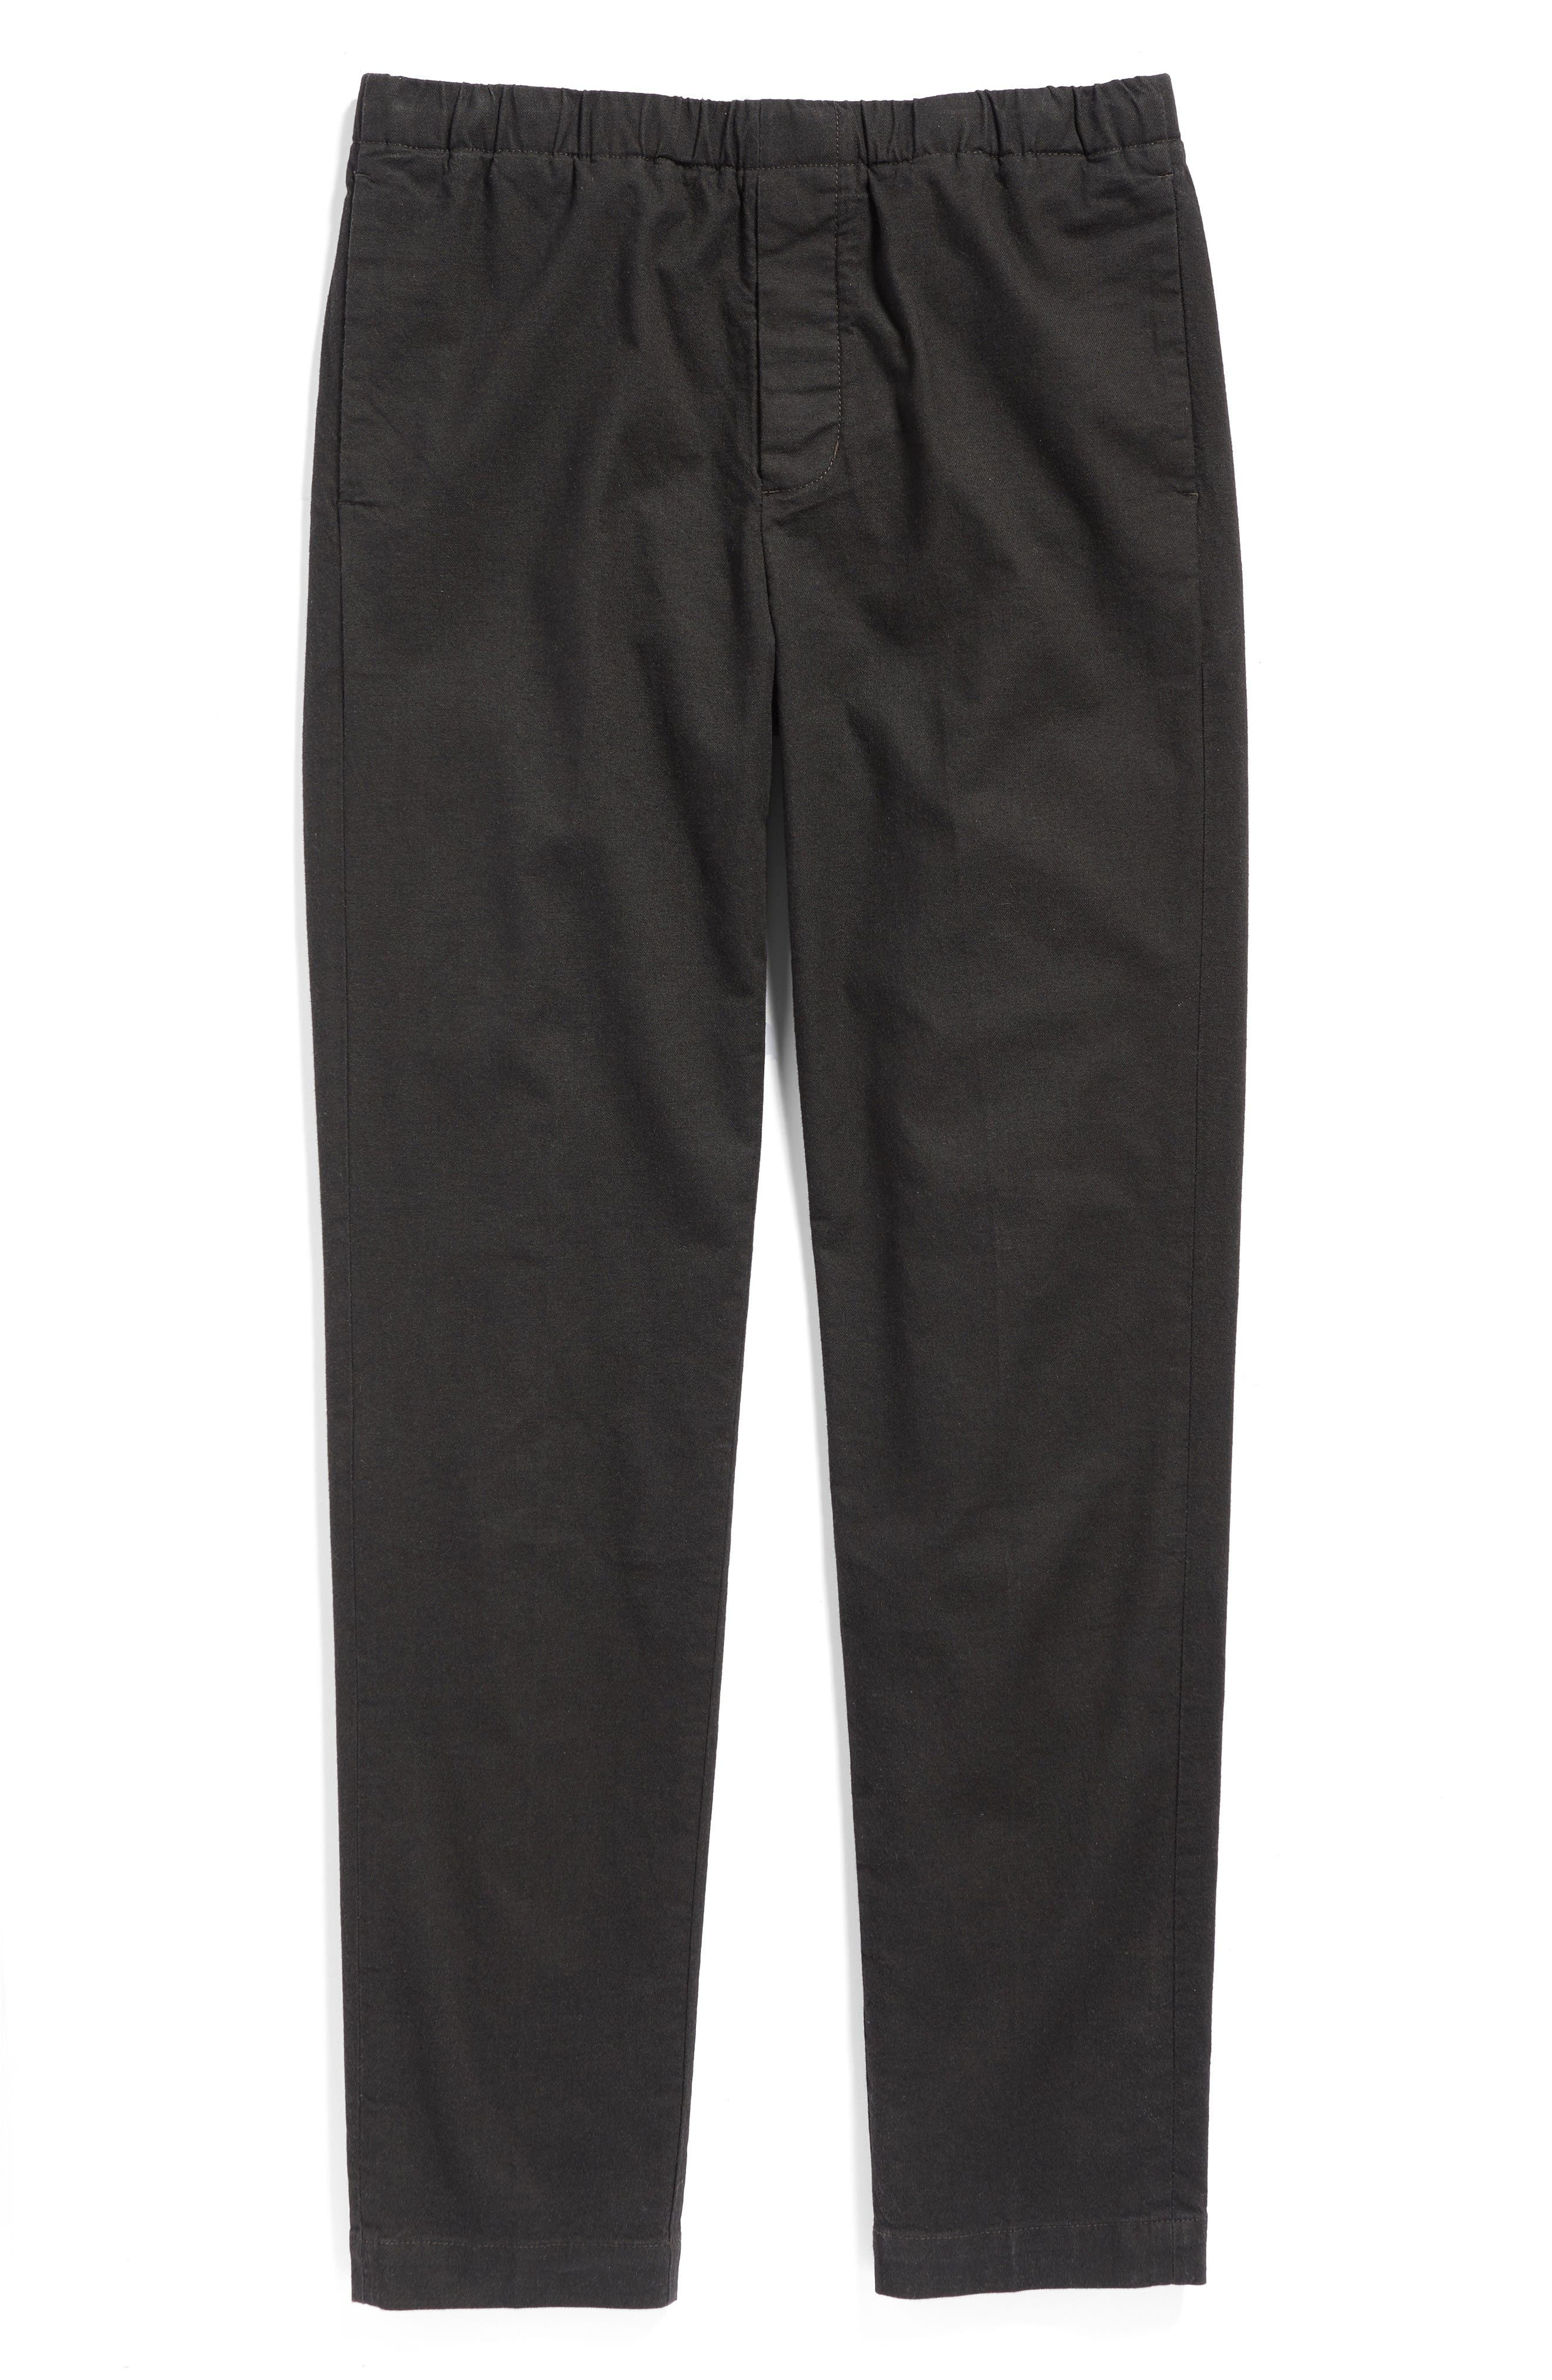 Relaxed Pants,                             Alternate thumbnail 5, color,                             Coal